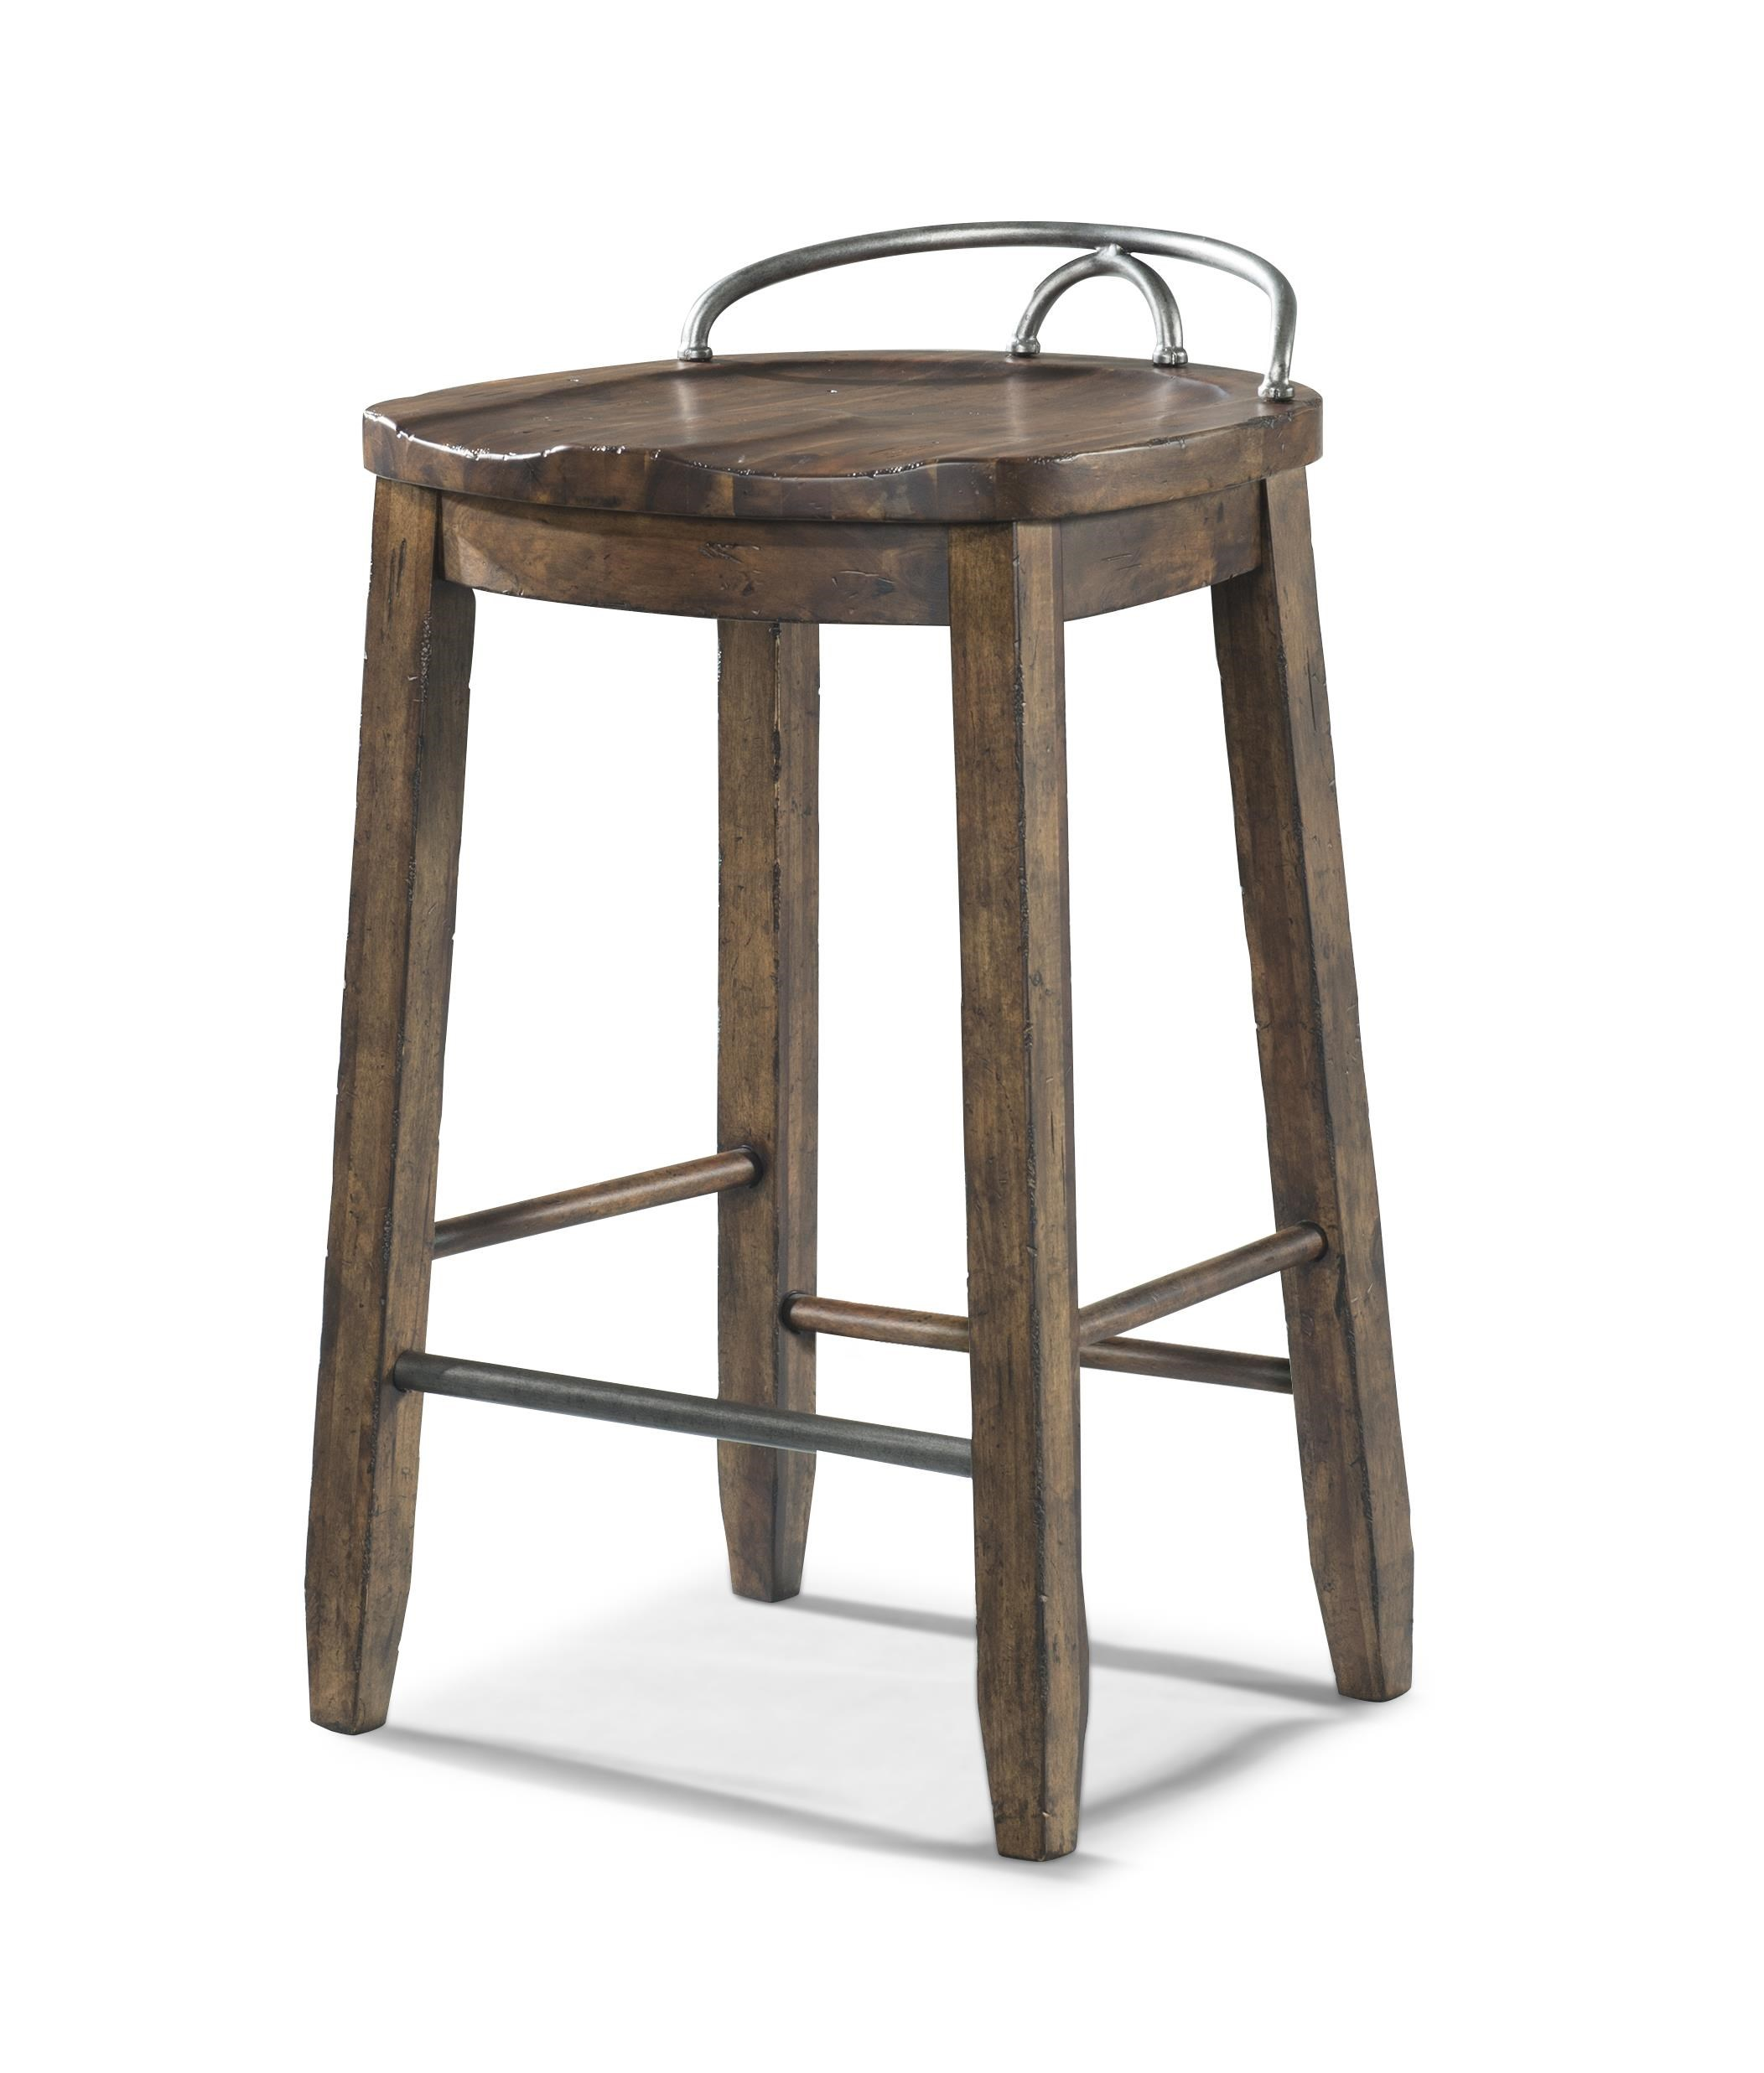 klaussner trisha yearwood home cowboy saddle stool homeworld furniture bar stools - Saddle Stools